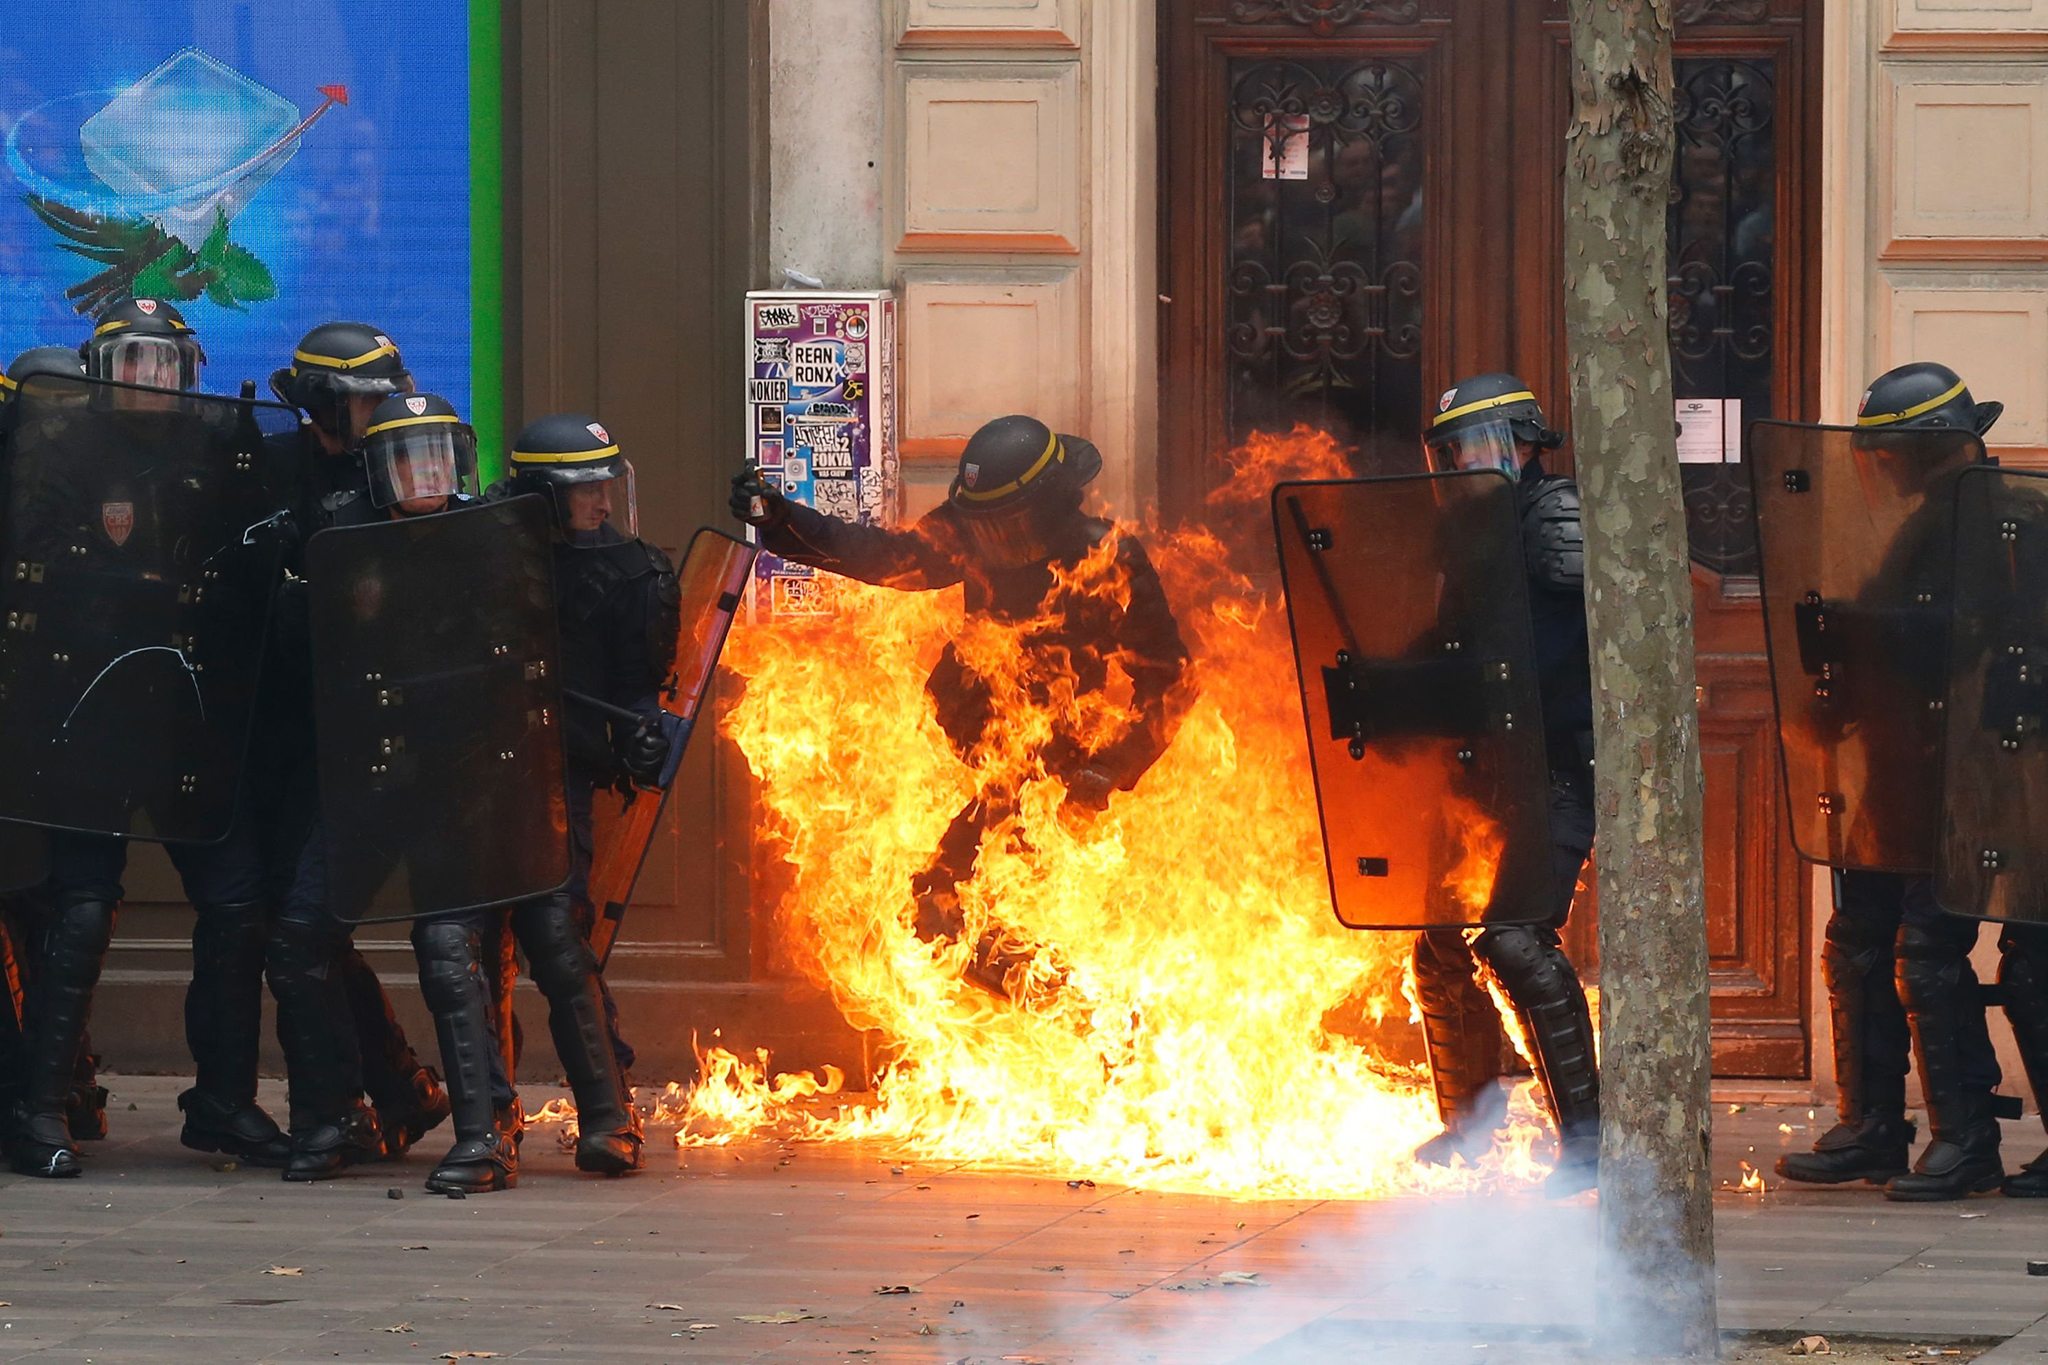 A French riot police officer gesturea as he is surrounded by flames, during a demonstration against the controversial labour reforms of the French government in Paris on September 15, 2016. Opponents of France's controversial labour reforms took to the streets on September 15, 2016 for the 14th time in six months in a last-ditch bid to quash the measures that lost the Socialist government crucial support on the left. Scores of flights in and out of France were cancelled as air traffic controllers went on strike to try to force the government to repeal the changes that became law in July. / AFP PHOTO / Thomas SAMSONTHOMAS SAMSON/AFP/Getty Images